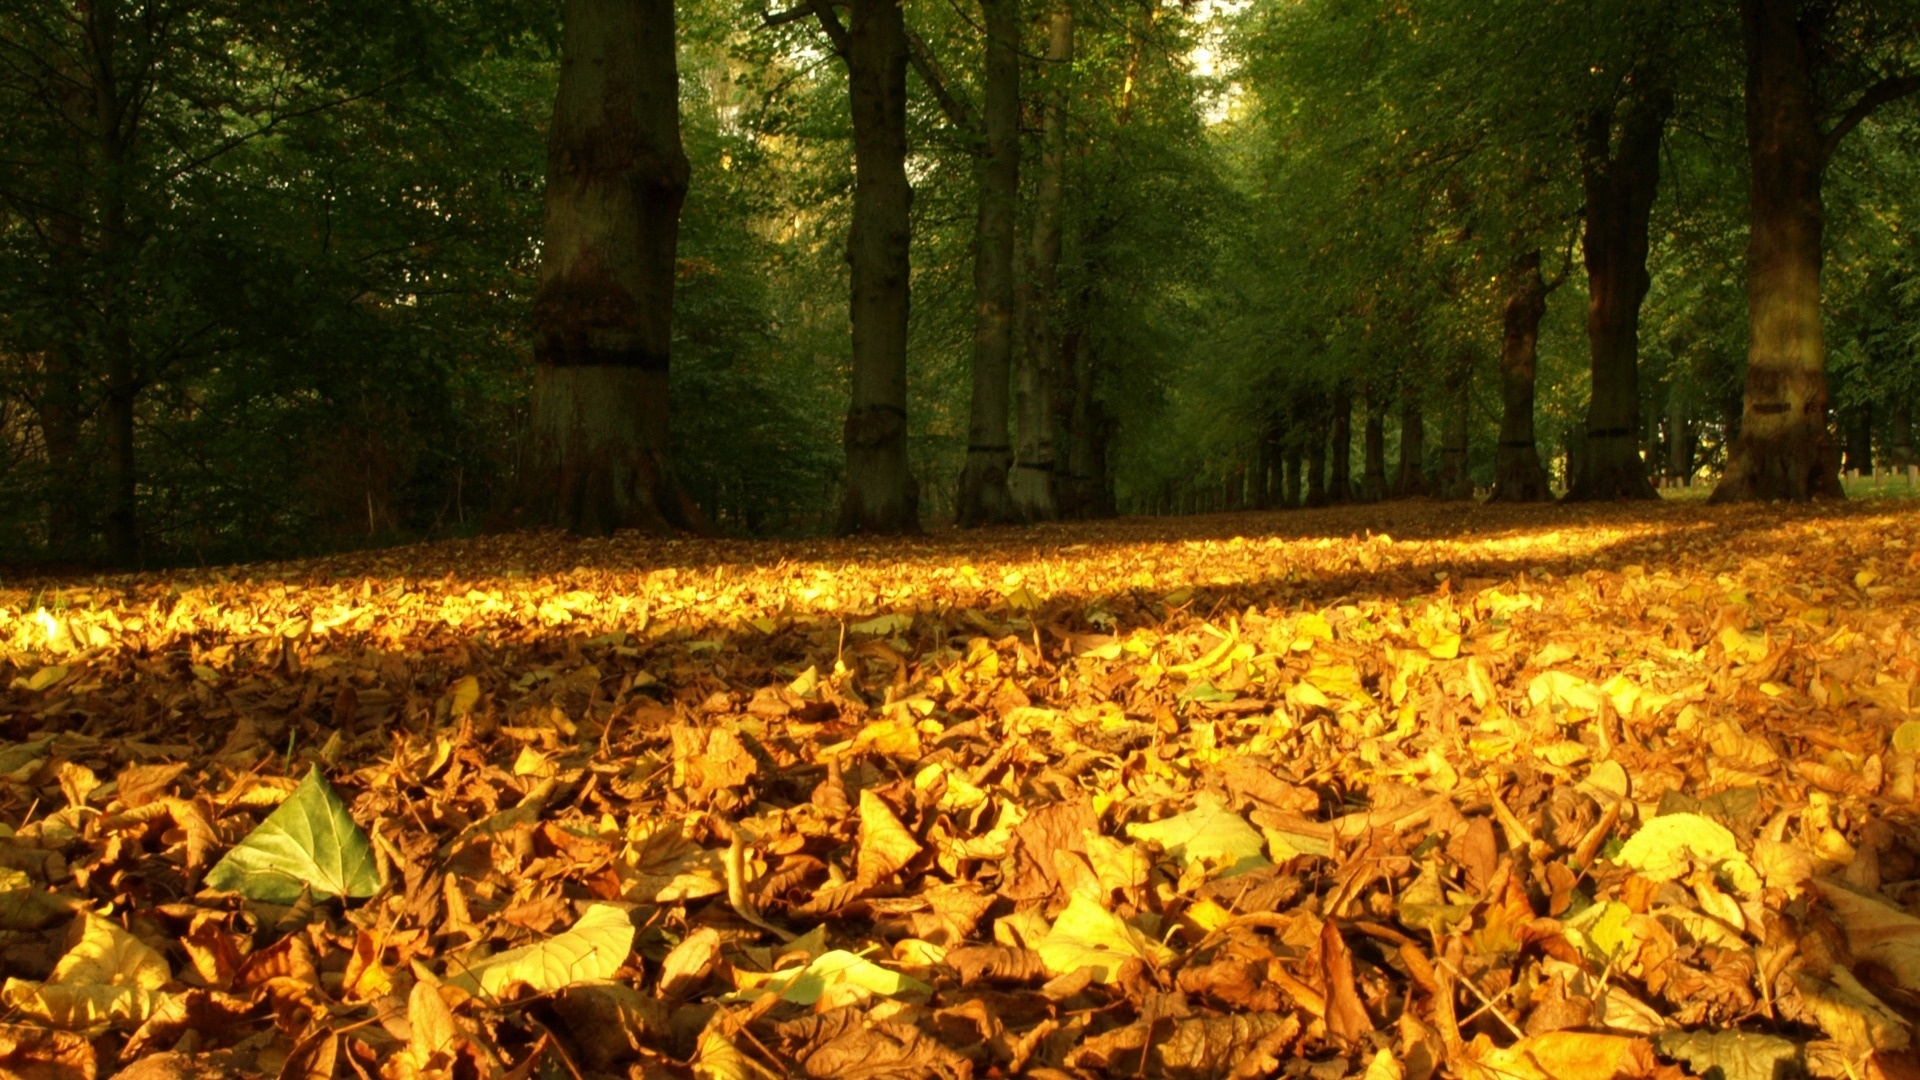 33434 download wallpaper Landscape, Trees, Autumn, Leaves screensavers and pictures for free